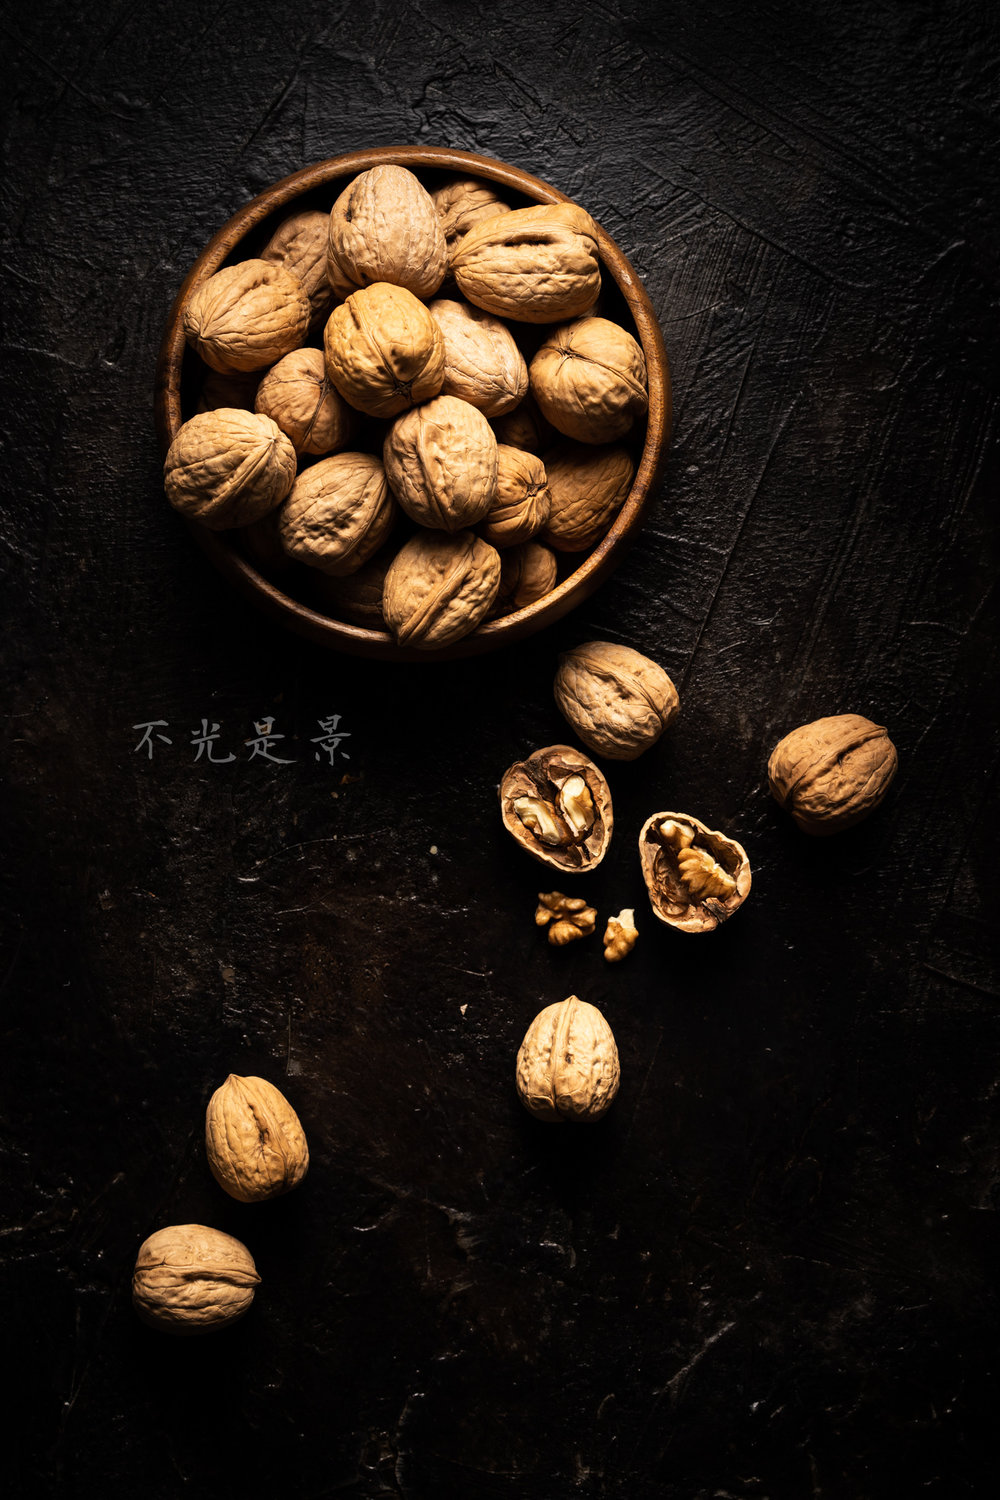 20180812Walnuts10-1024wm.jpg